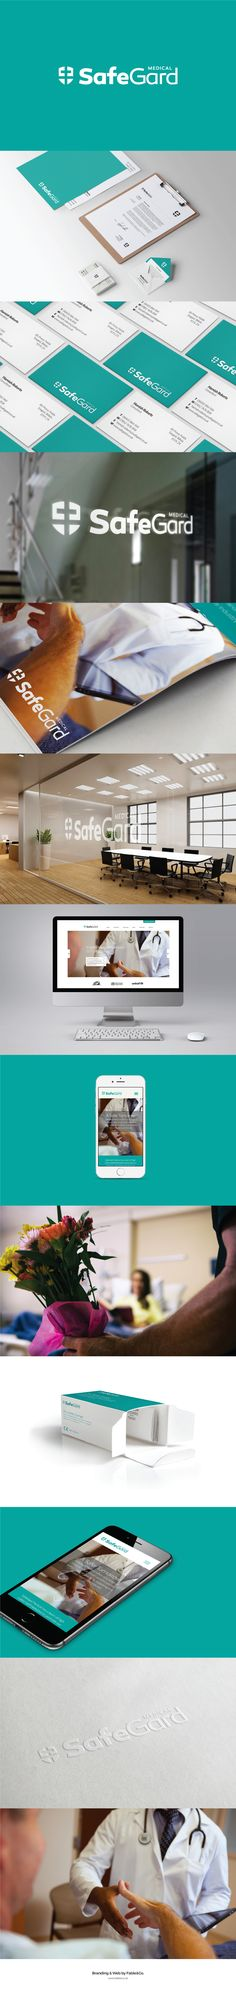 Medical Branding. Fable&Co. were approached by a European based supplier & manufacturer of innovative medical products. The brief was to strategically re-brand this established business to enable and support their forthcoming global expansion. Click the Image for the full case study